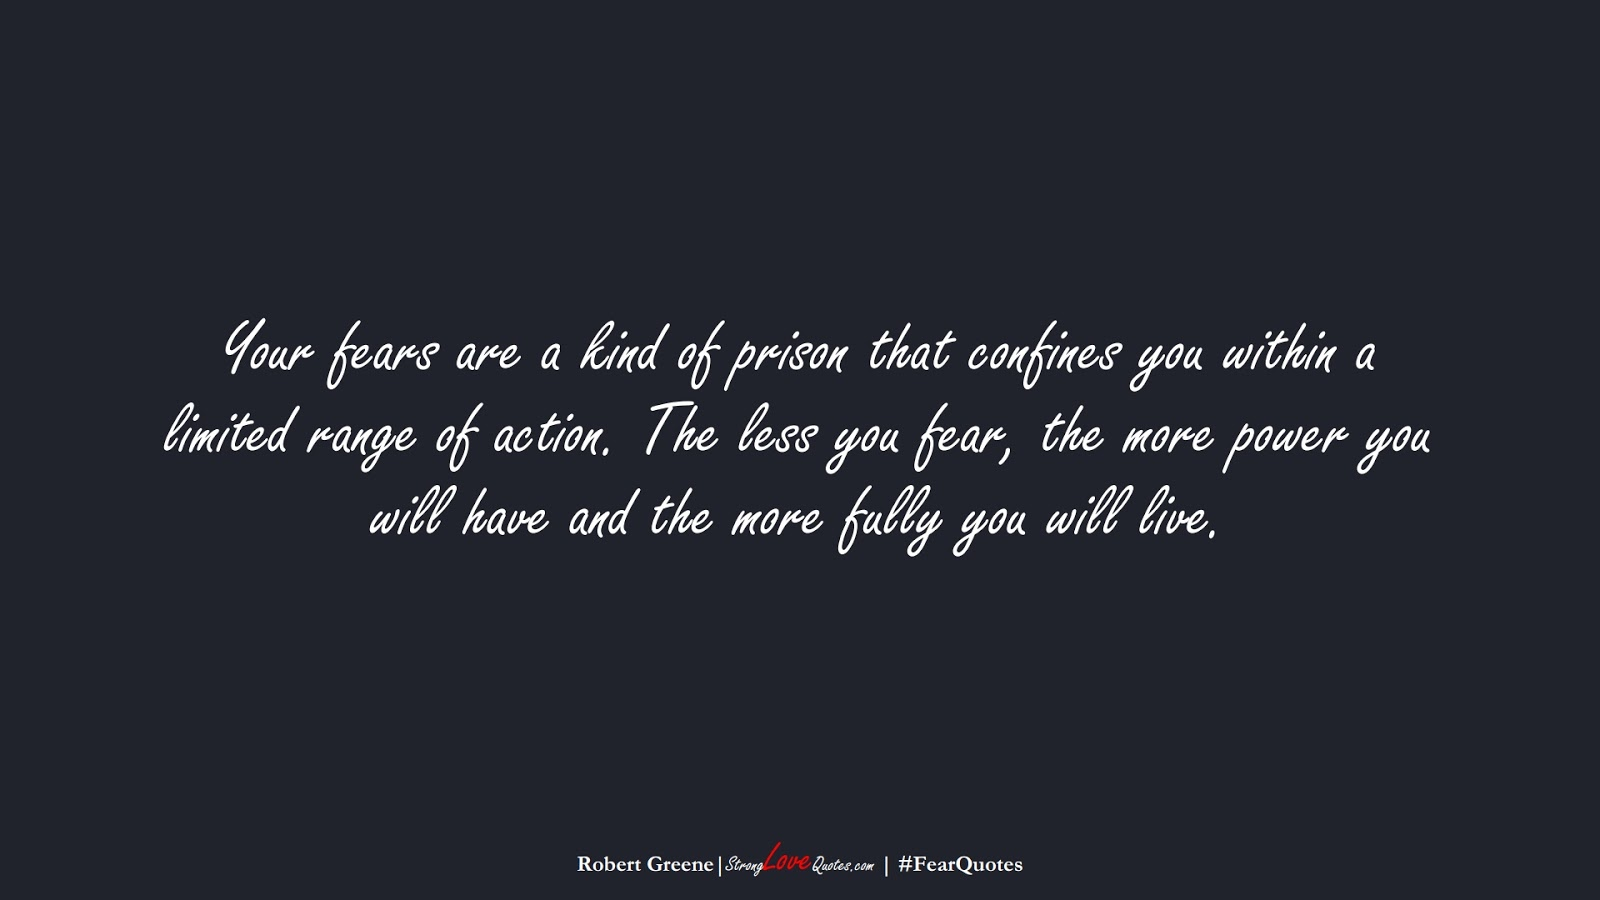 Your fears are a kind of prison that confines you within a limited range of action. The less you fear, the more power you will have and the more fully you will live. (Robert Greene);  #FearQuotes